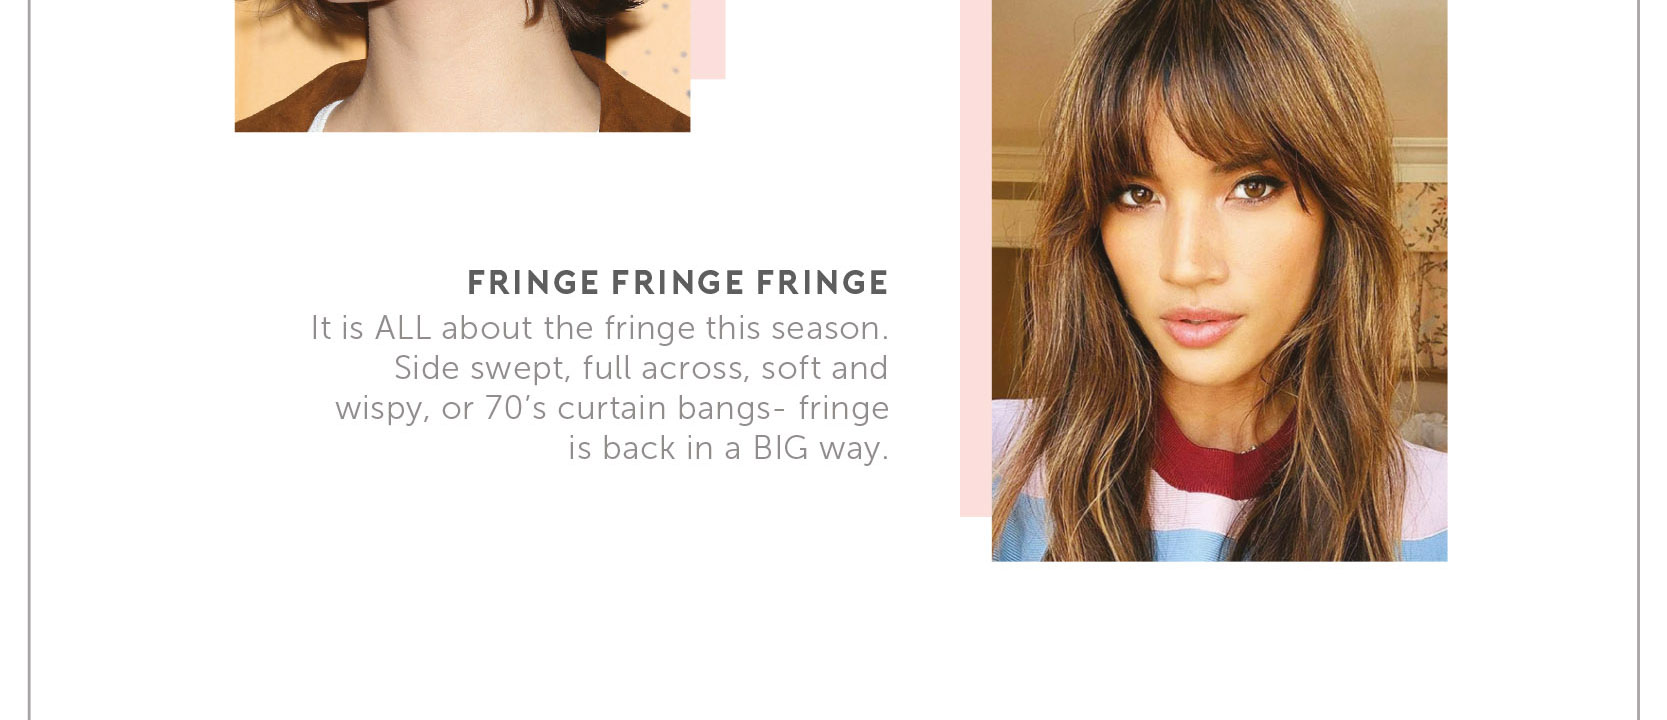 Fringe. Fringe. Fringe. It is ALL about the fringe this season. Side swept, full across, soft and wispy, or 70's curtain bangs - fringe is back in a BIG way.